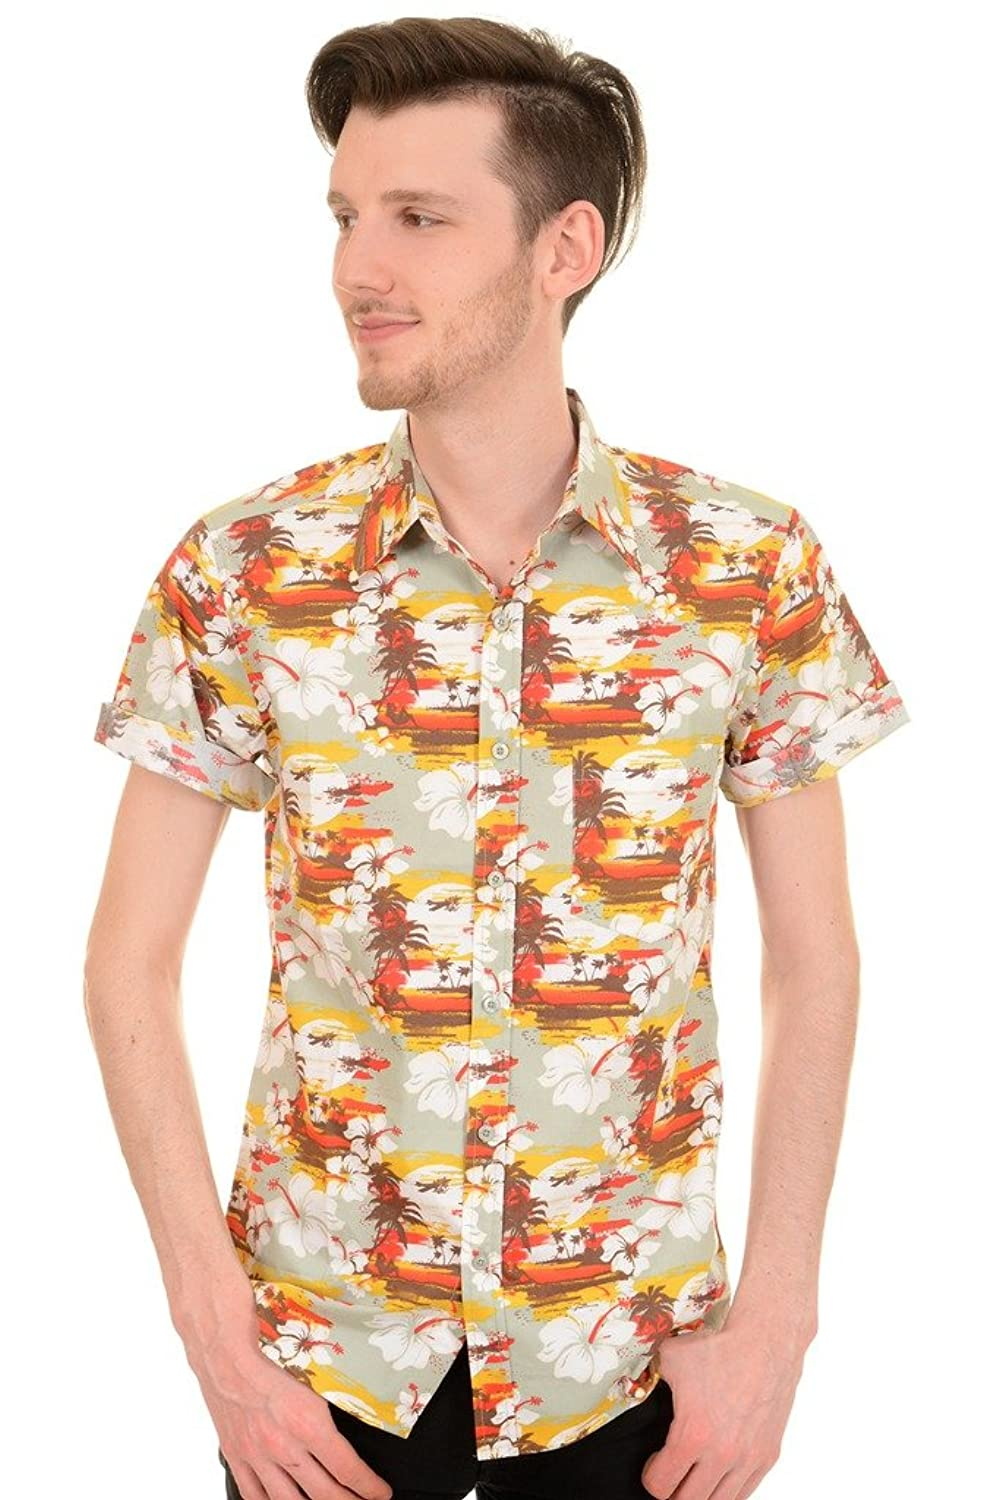 1960s Men's Clothing, 70s Men's Fashion Mens Run & Fly Retro Sunset Hawaiian Beach Shirt $34.95 AT vintagedancer.com